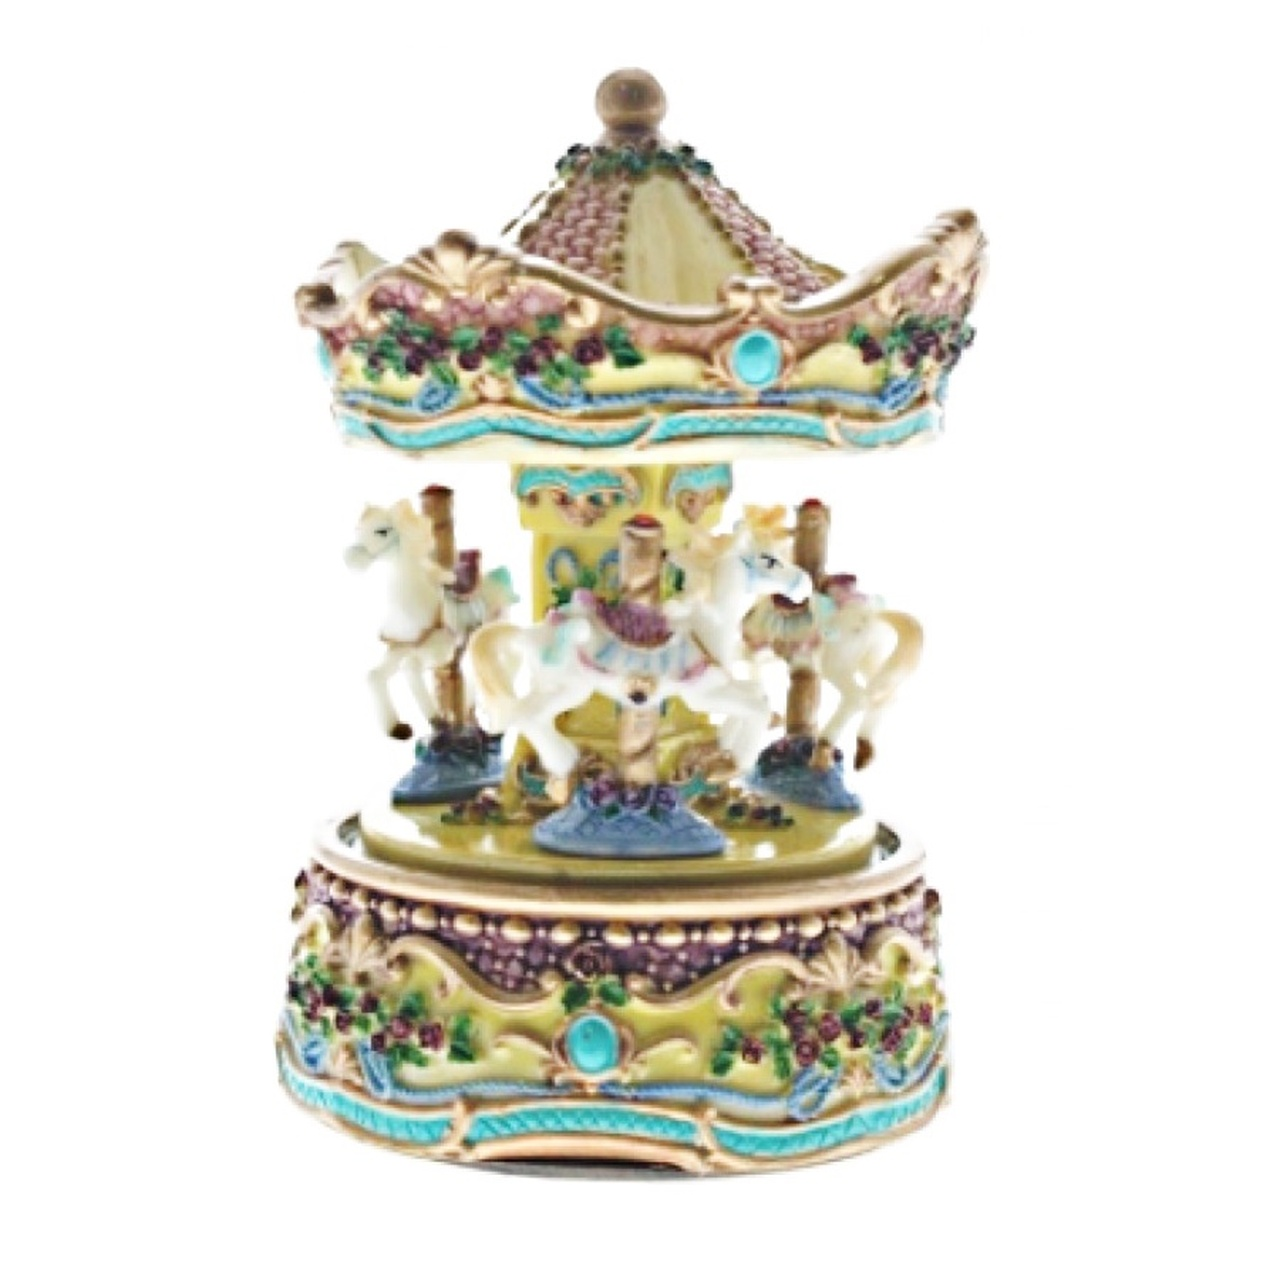 Cotton Candy Yellow and Blue Carousel 15cm